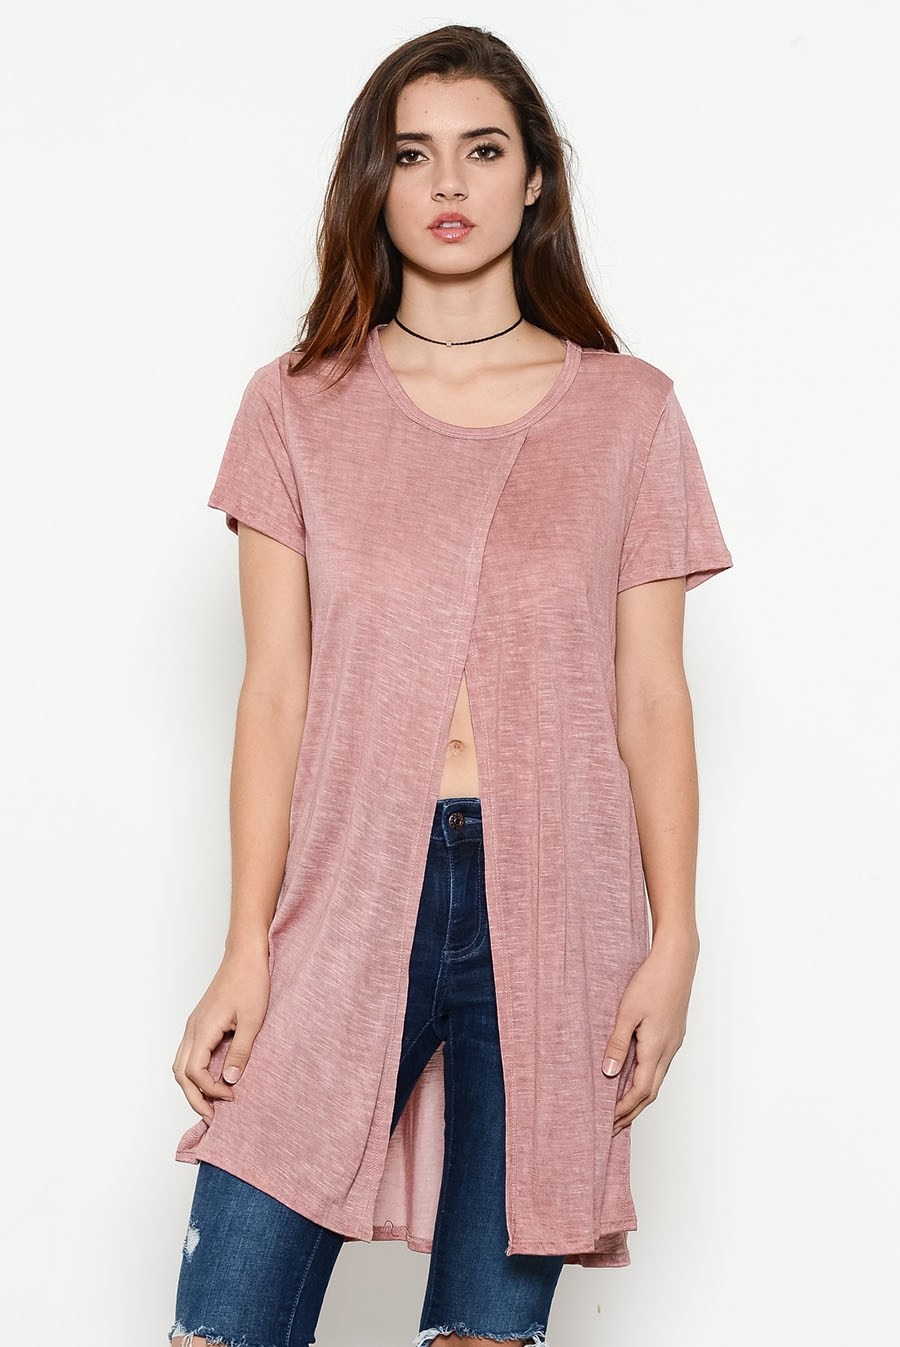 WASH LONGSLV SIDE SLIT TOP - orangeshine.com